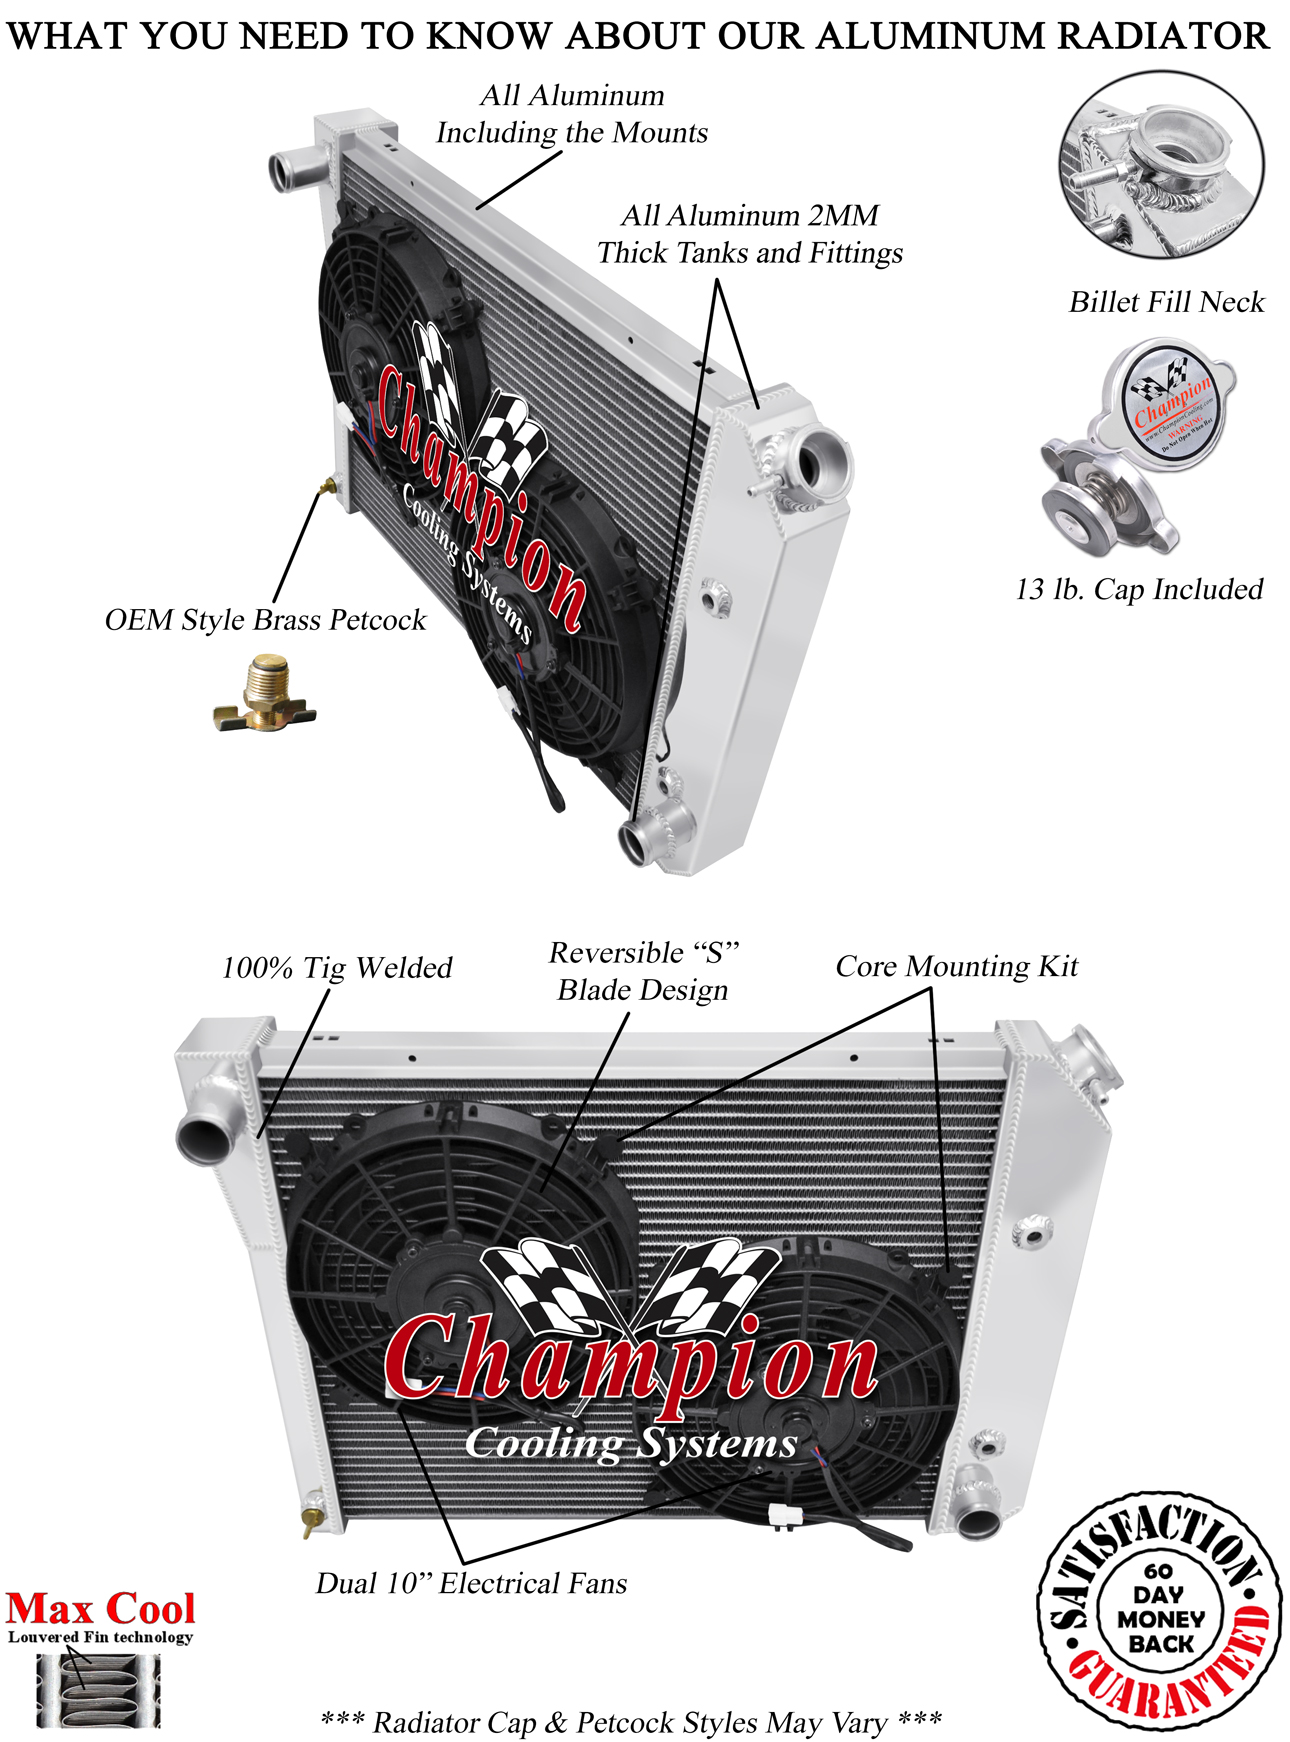 https://www.championcooling.com/photos/Photos%20White/With%20Fans/Combos/571/2x10/571_2f_d_w.jpg